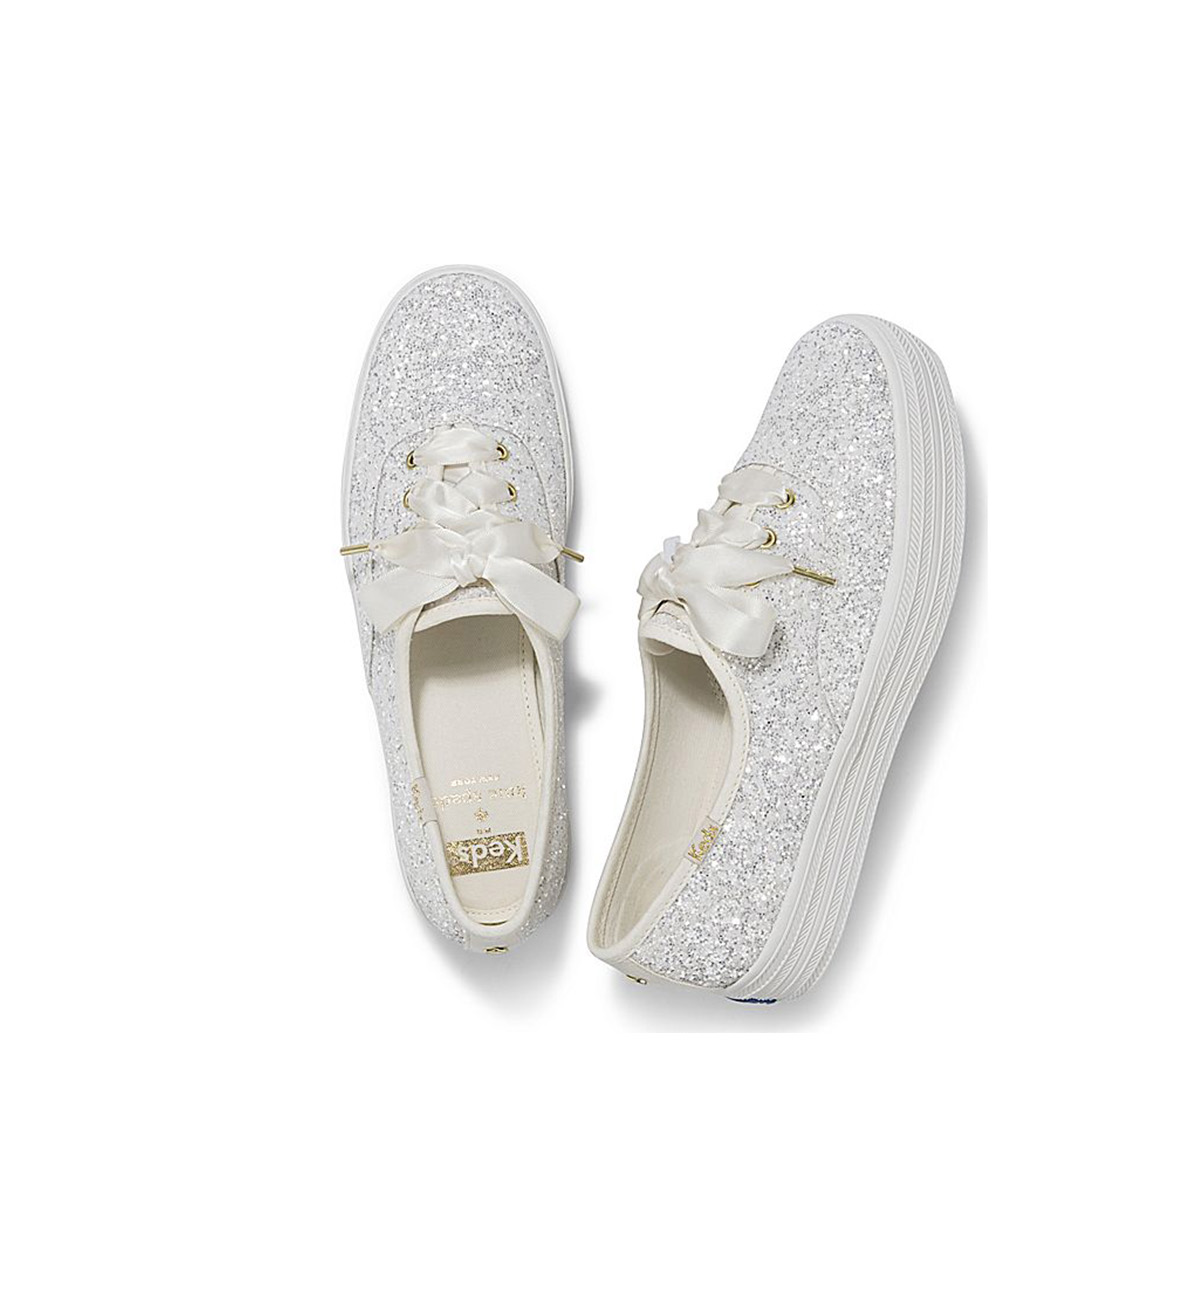 474ab68ac40 5 Wedding Sneakers That Are as Cute as They Are Comfy